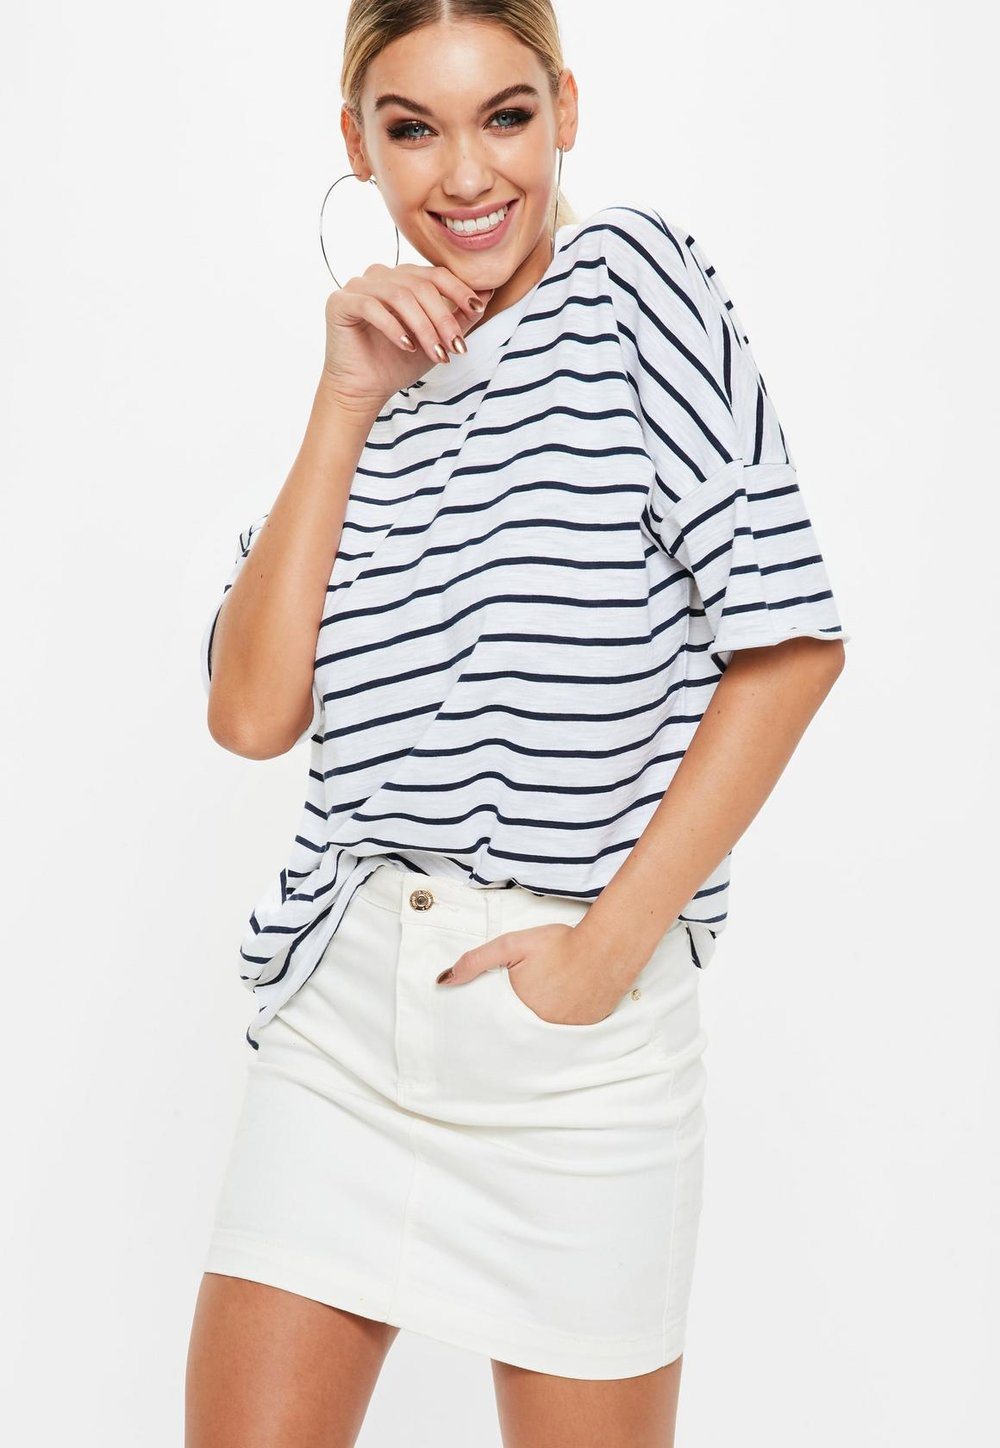 white-oversized-striped-t-shirt.jpg